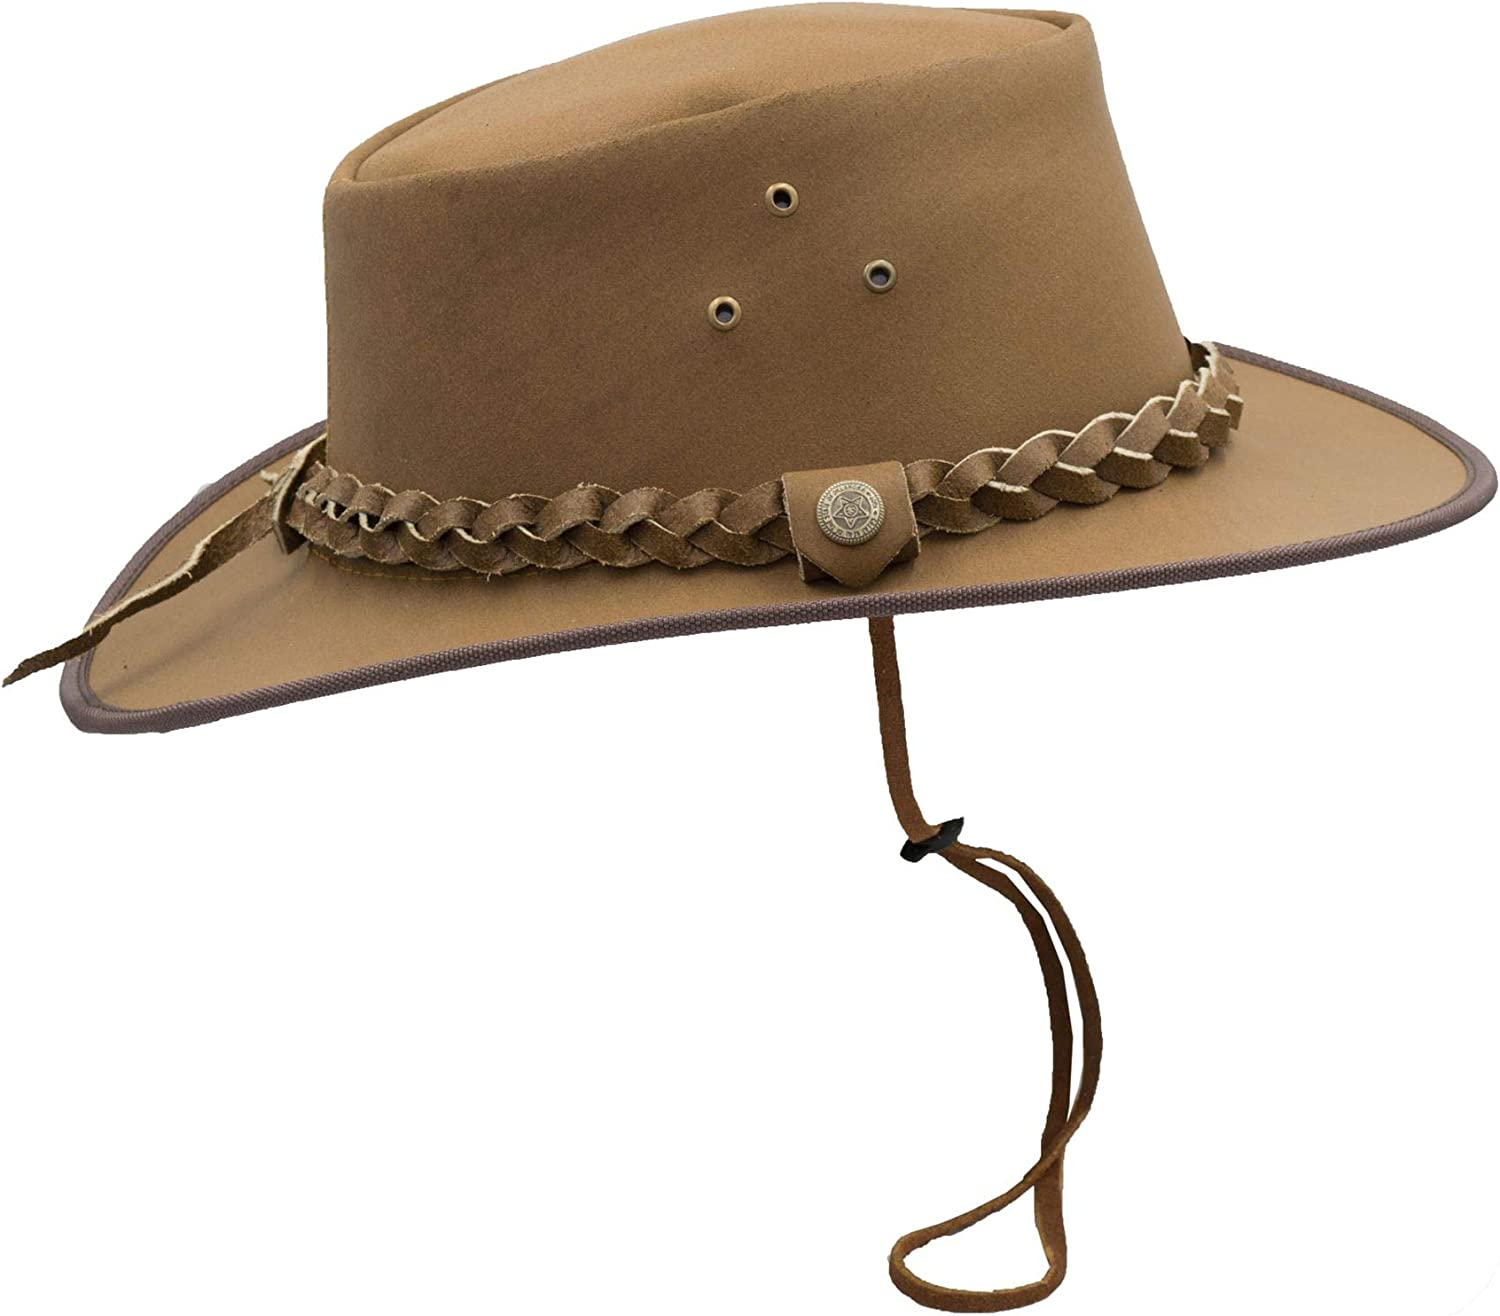 Leather Cowhide Outback Braided Traveller Hat Walker and Hawkes